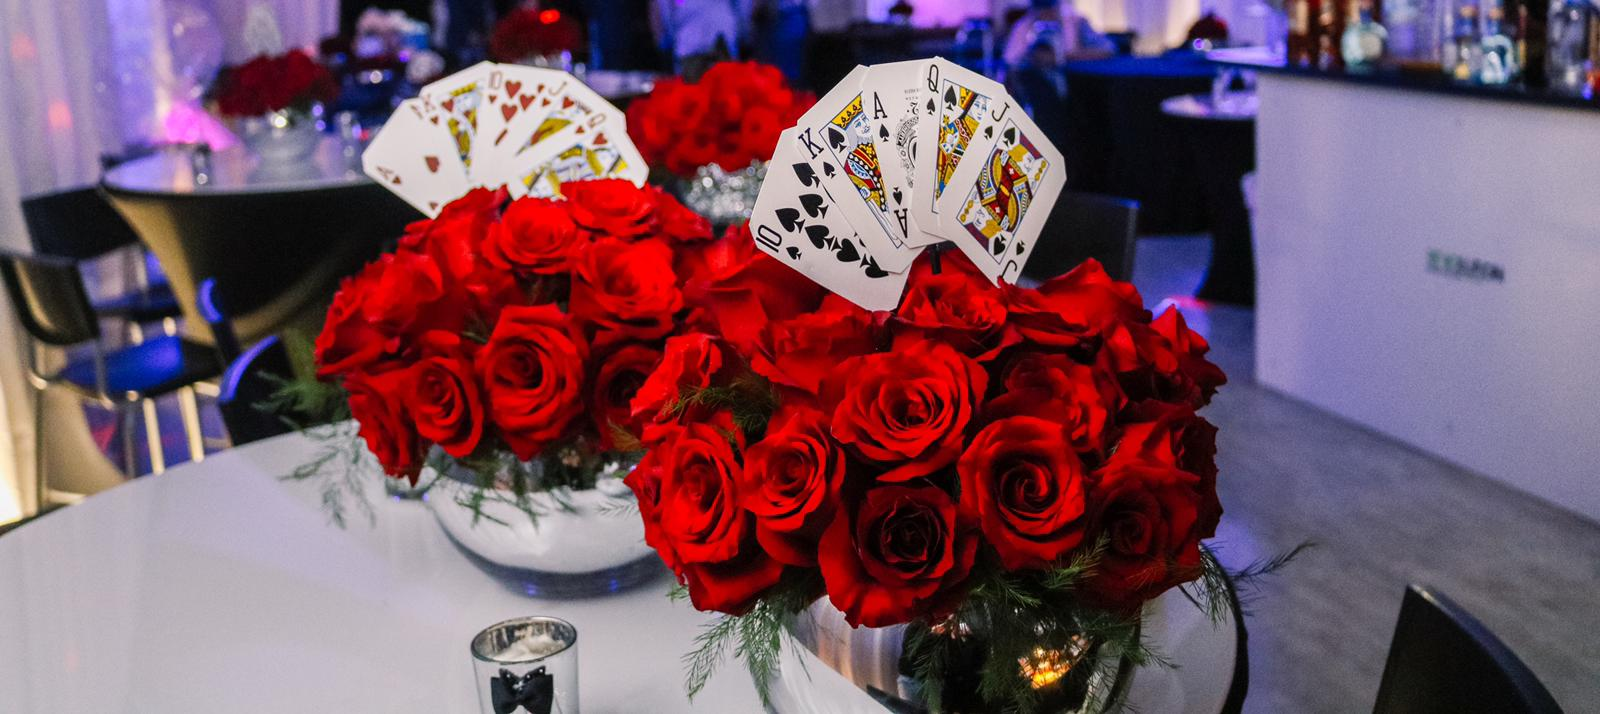 Roses and card decoration in banquet hall